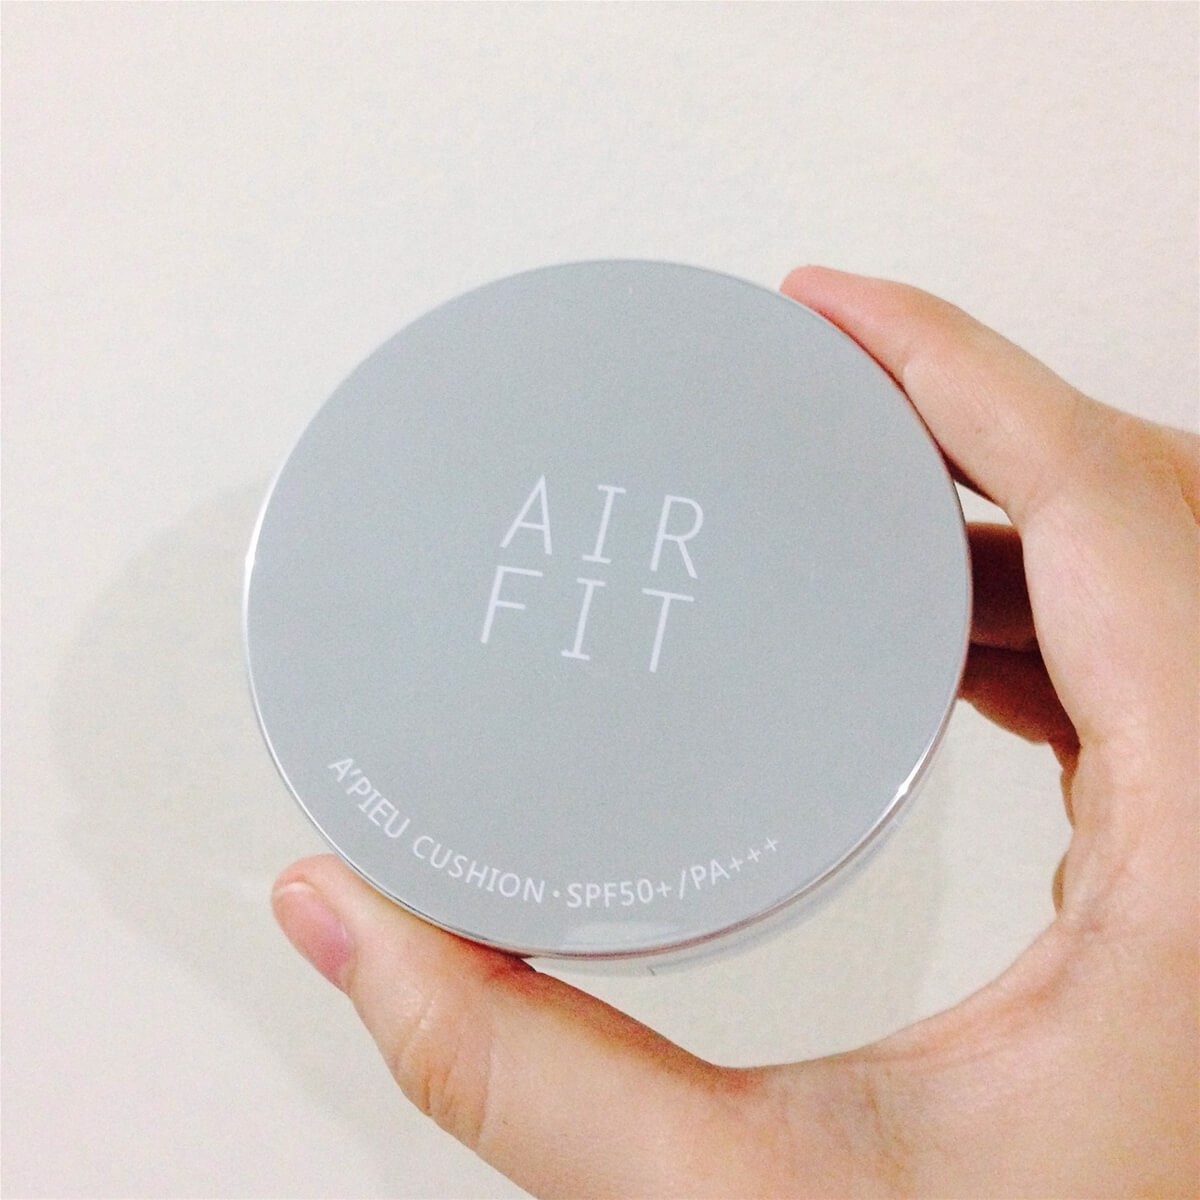 Phấn nước A'Pieu Air Fit Cushion